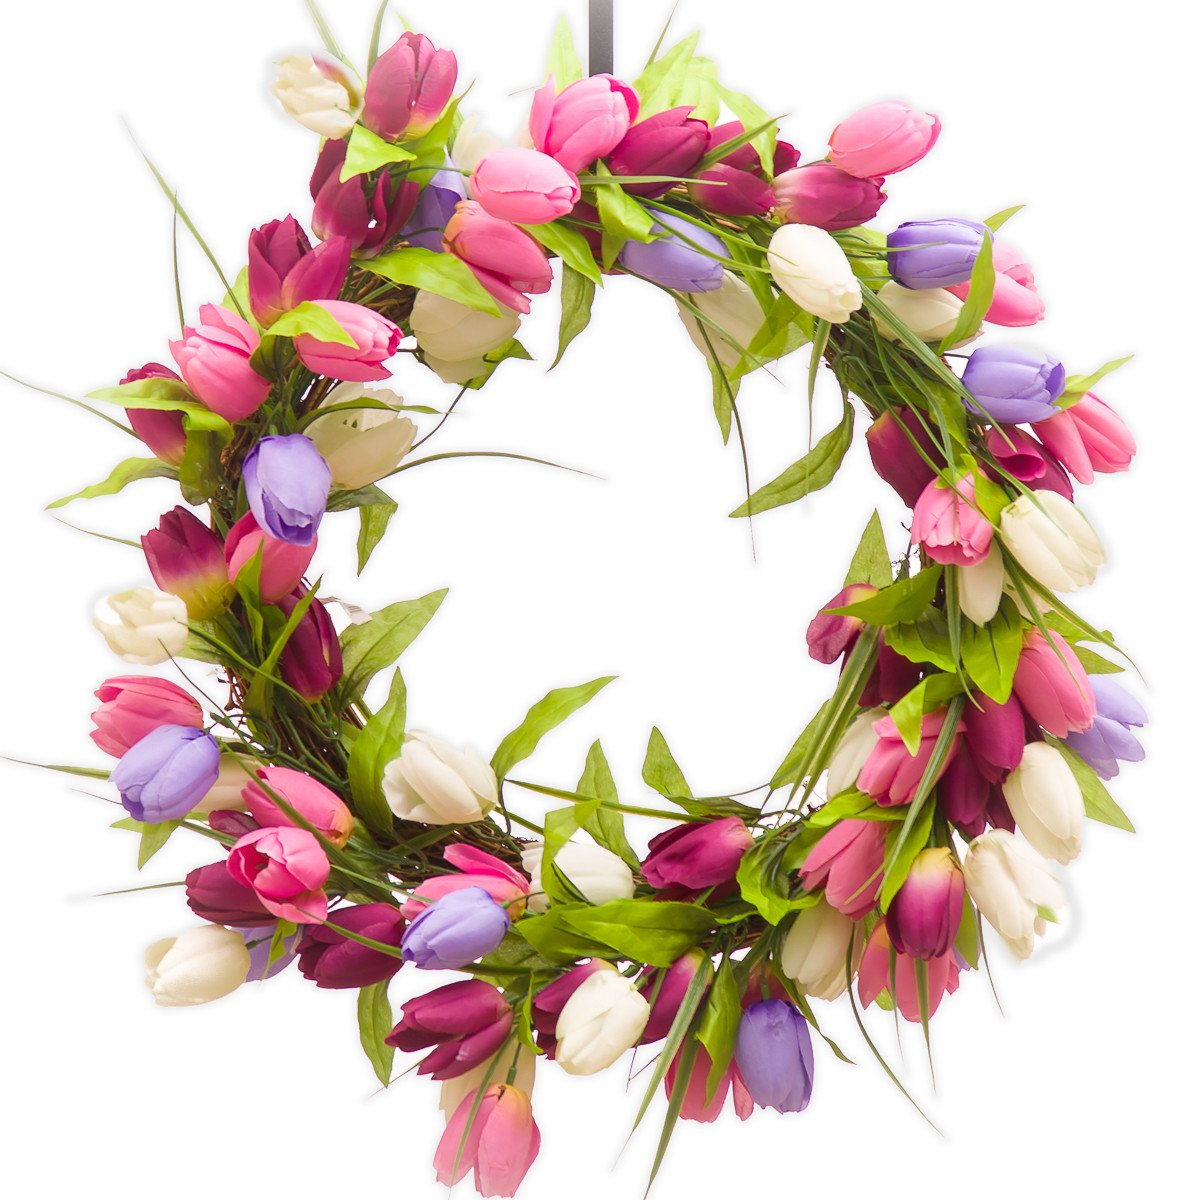 TULIP WREATH - PURPLE, PINK & BURGUNDY (SW952) - Spring Wreath - Summer Wreath - Silk Wreath